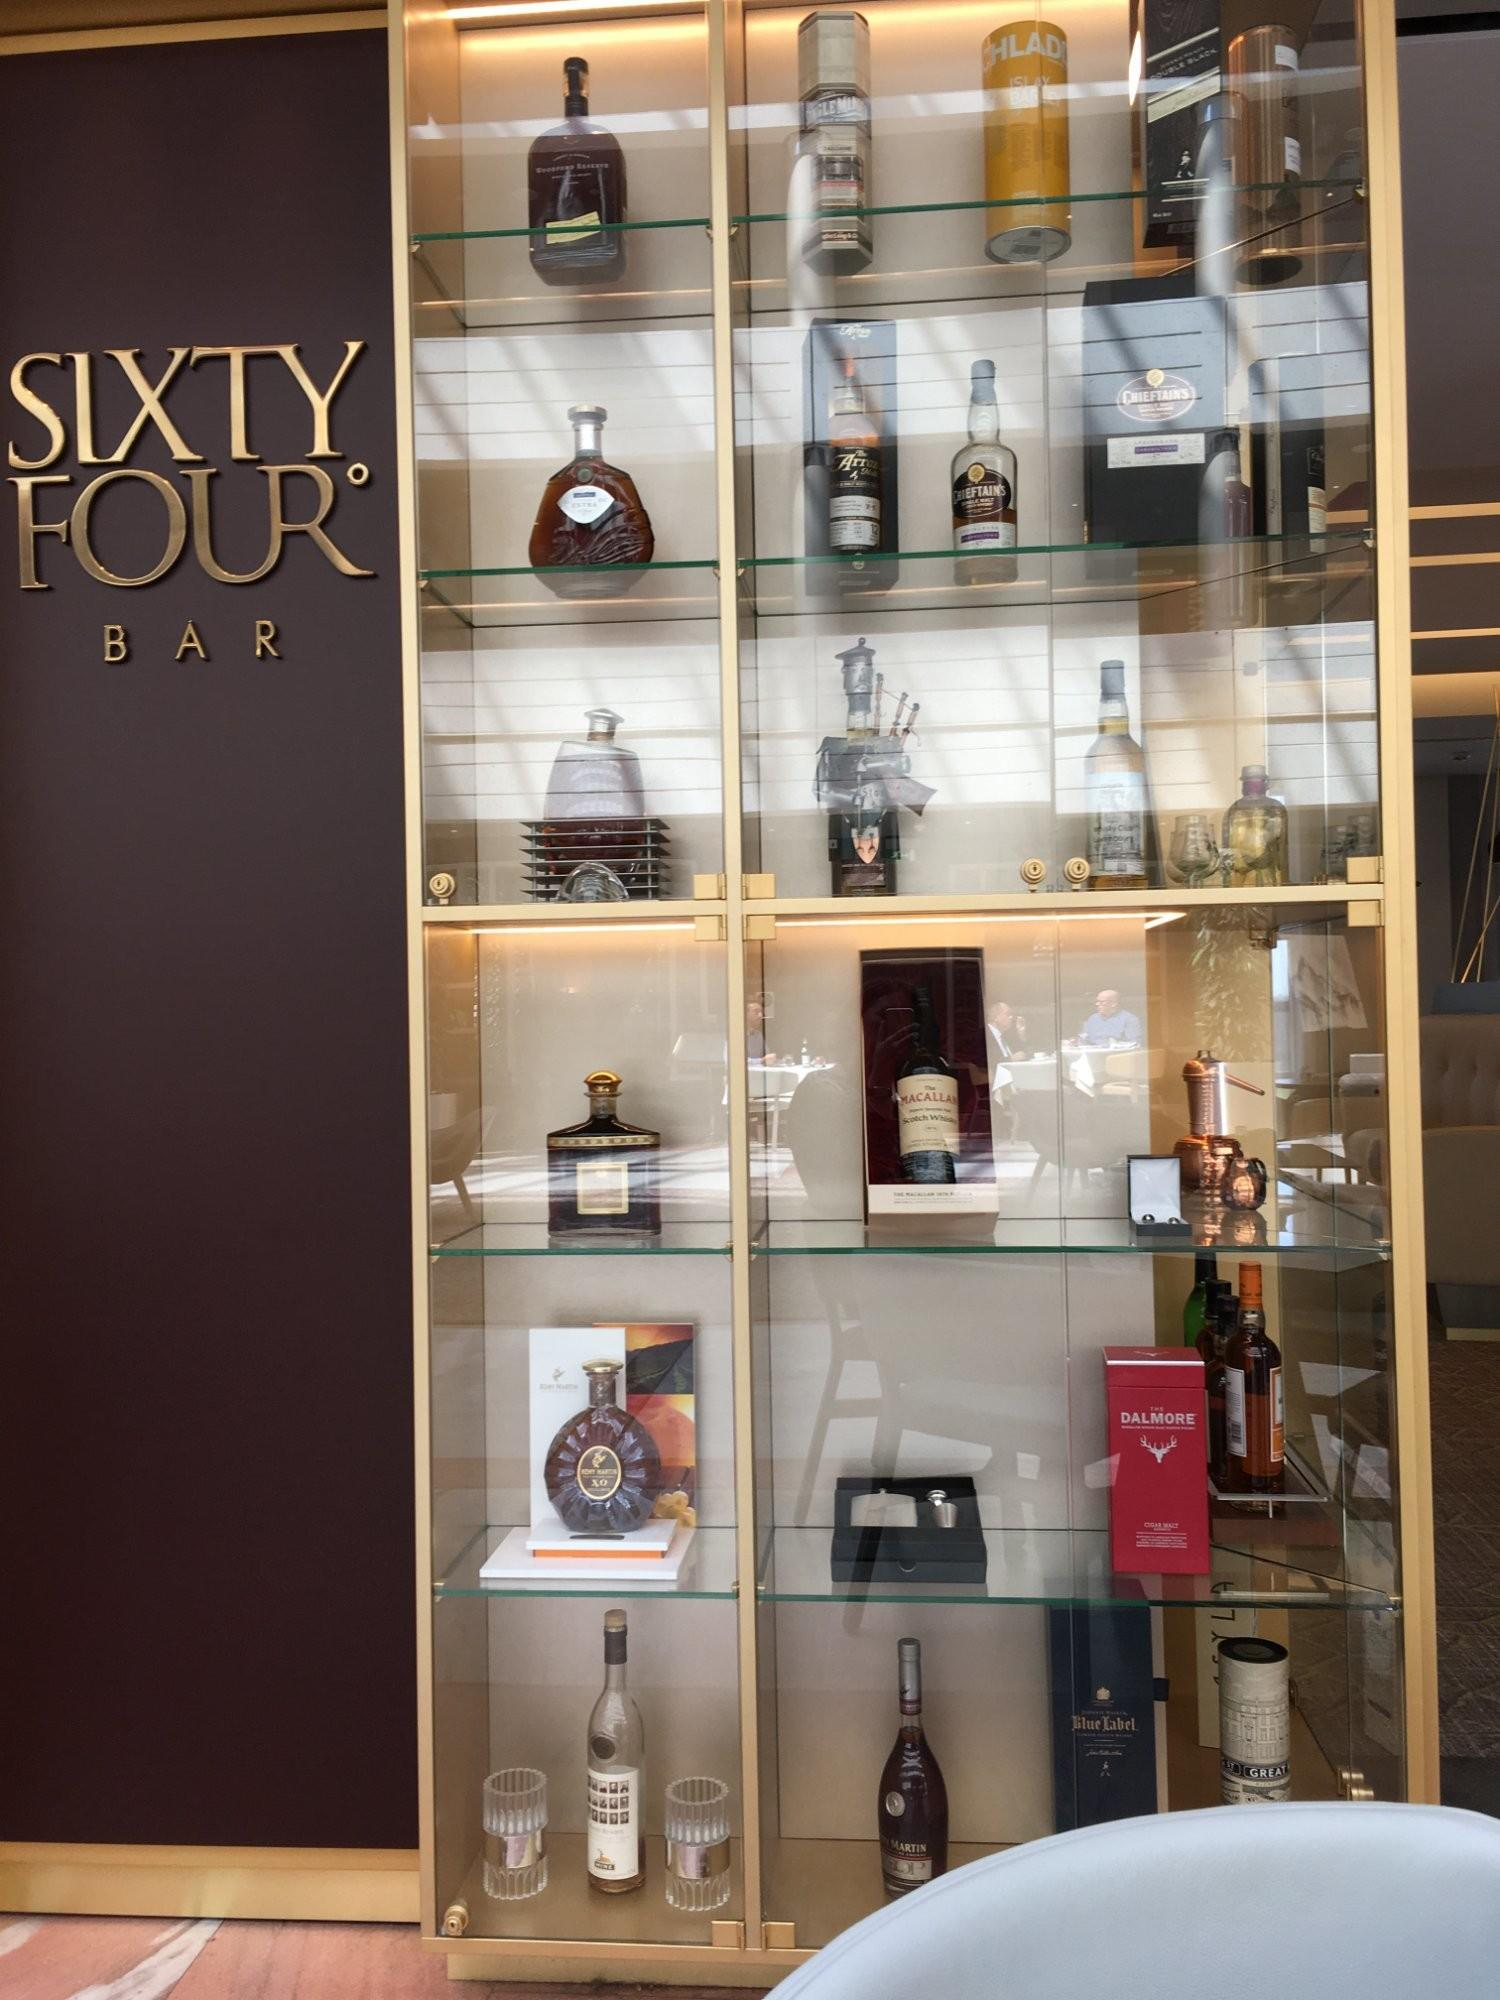 Sixty Four Bar Luxembourg City Restaurant